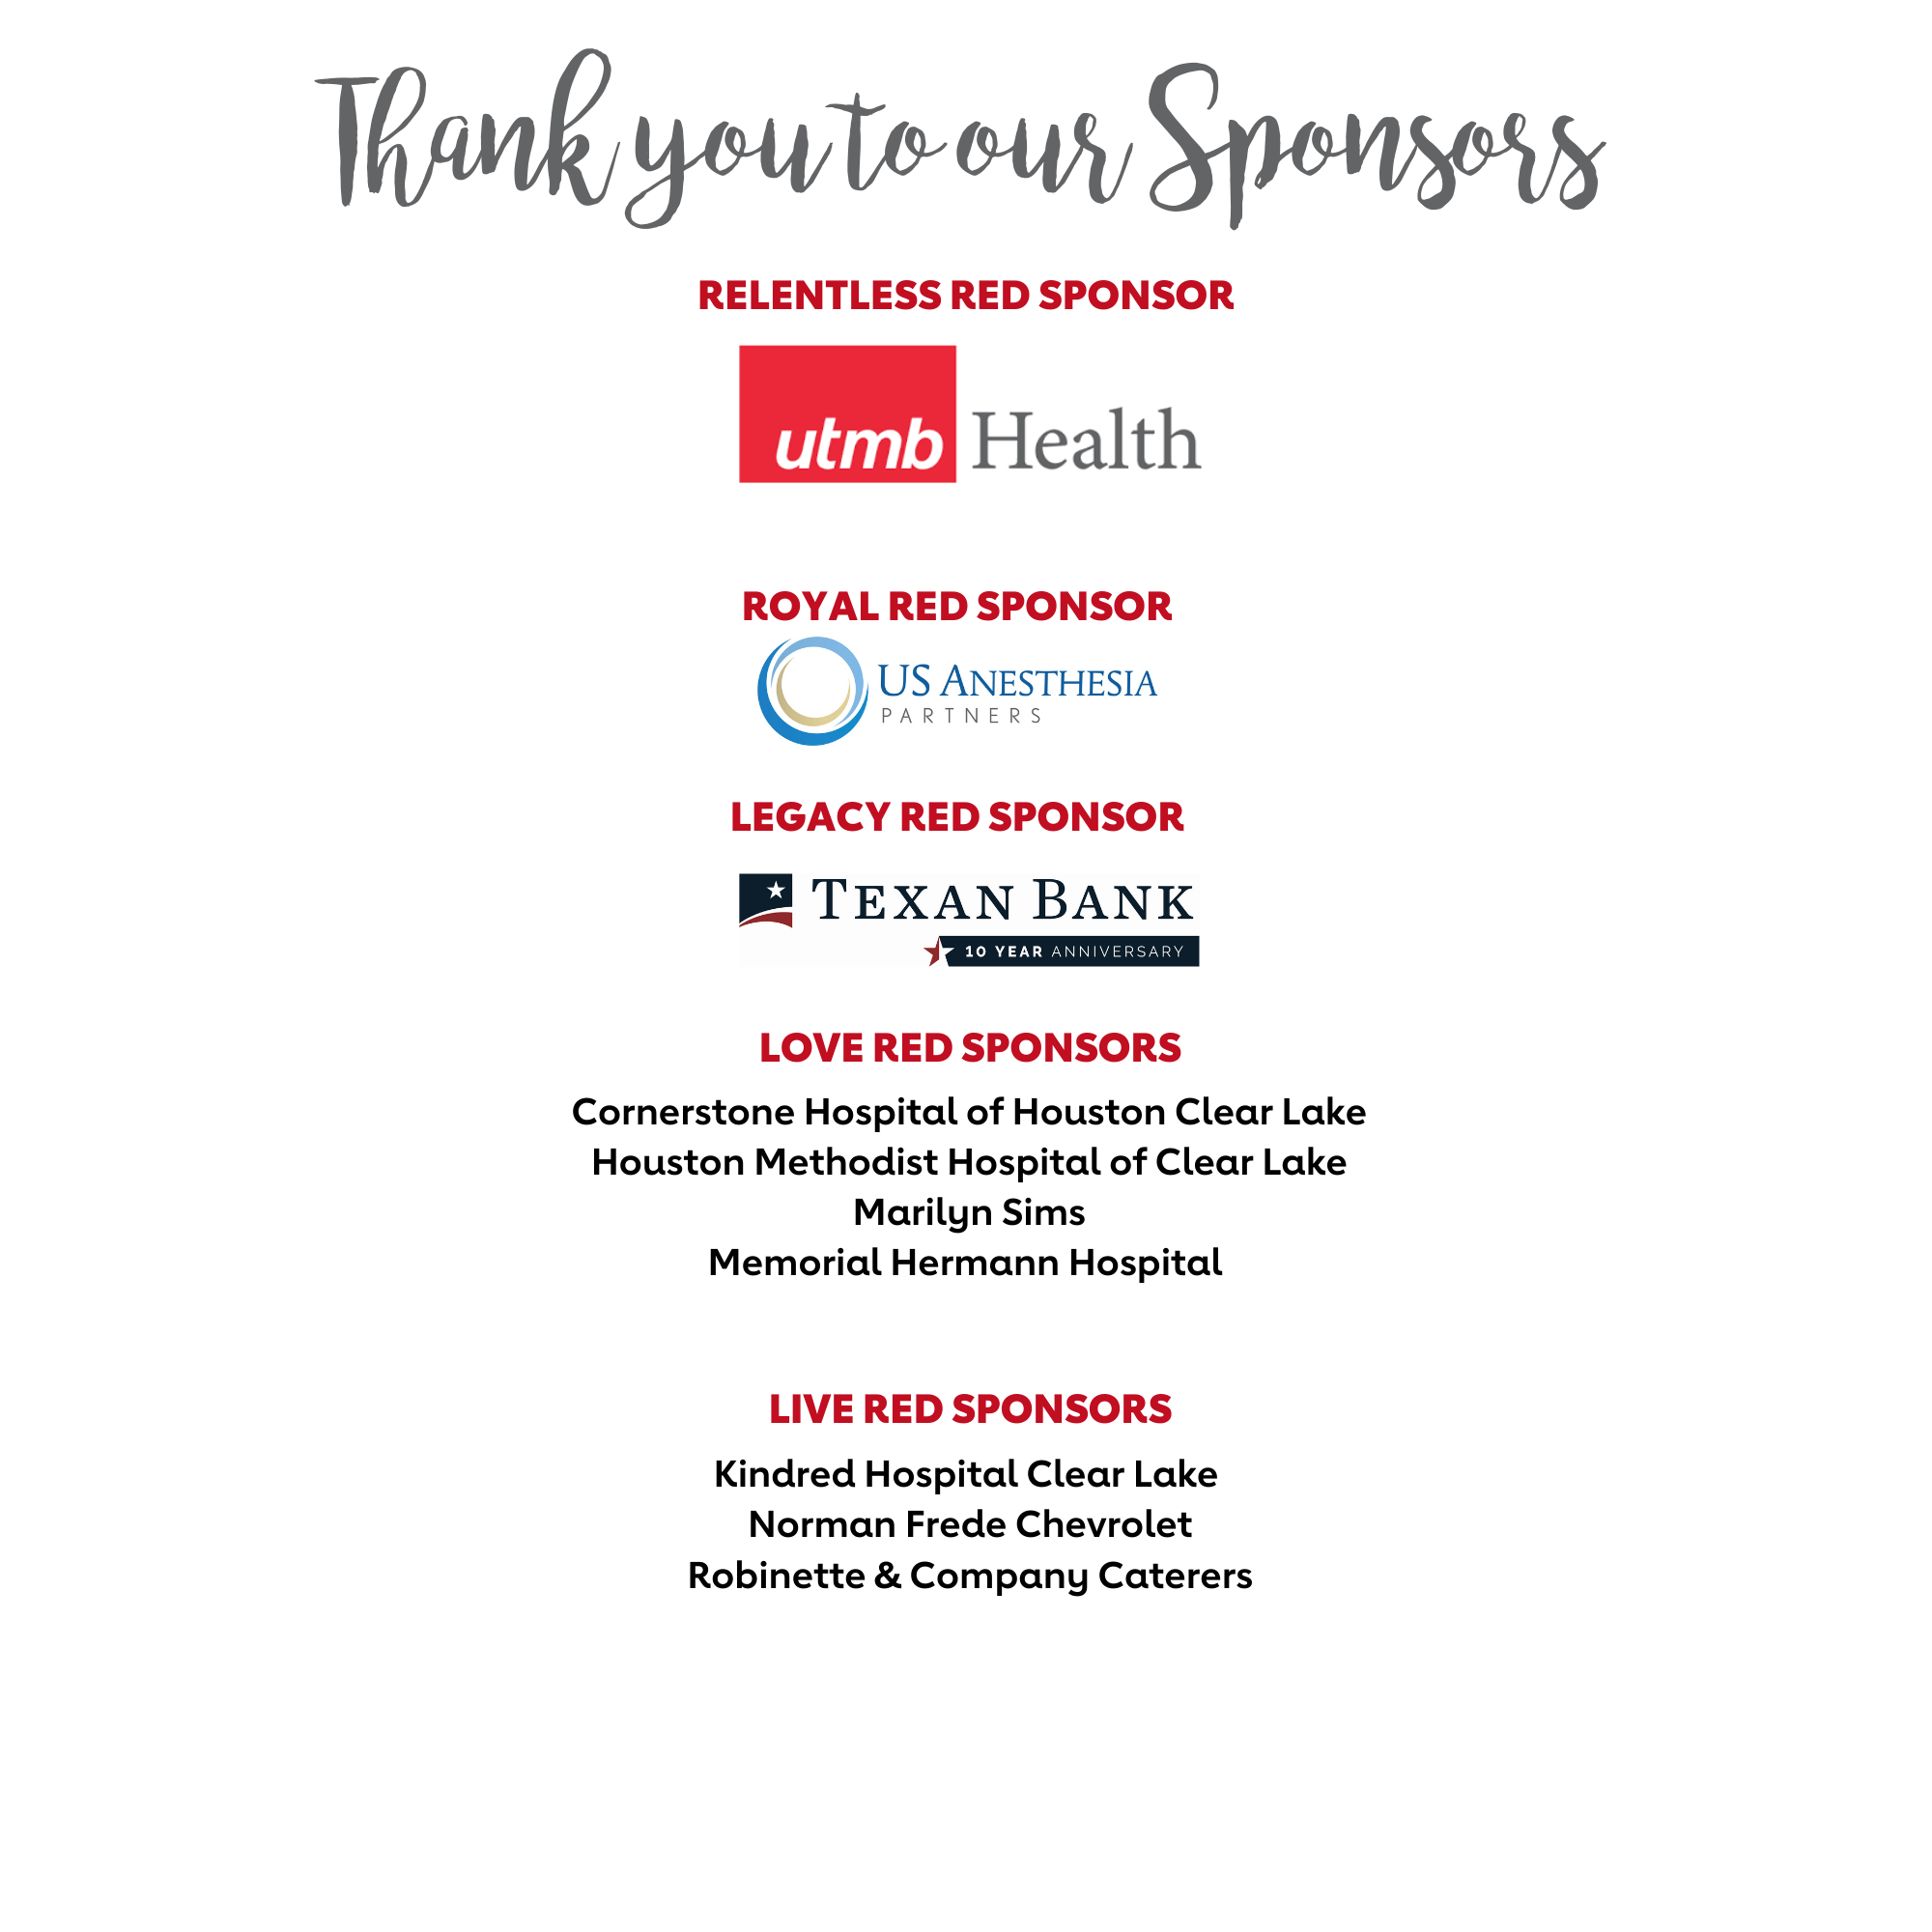 Thank you to our sponsrs